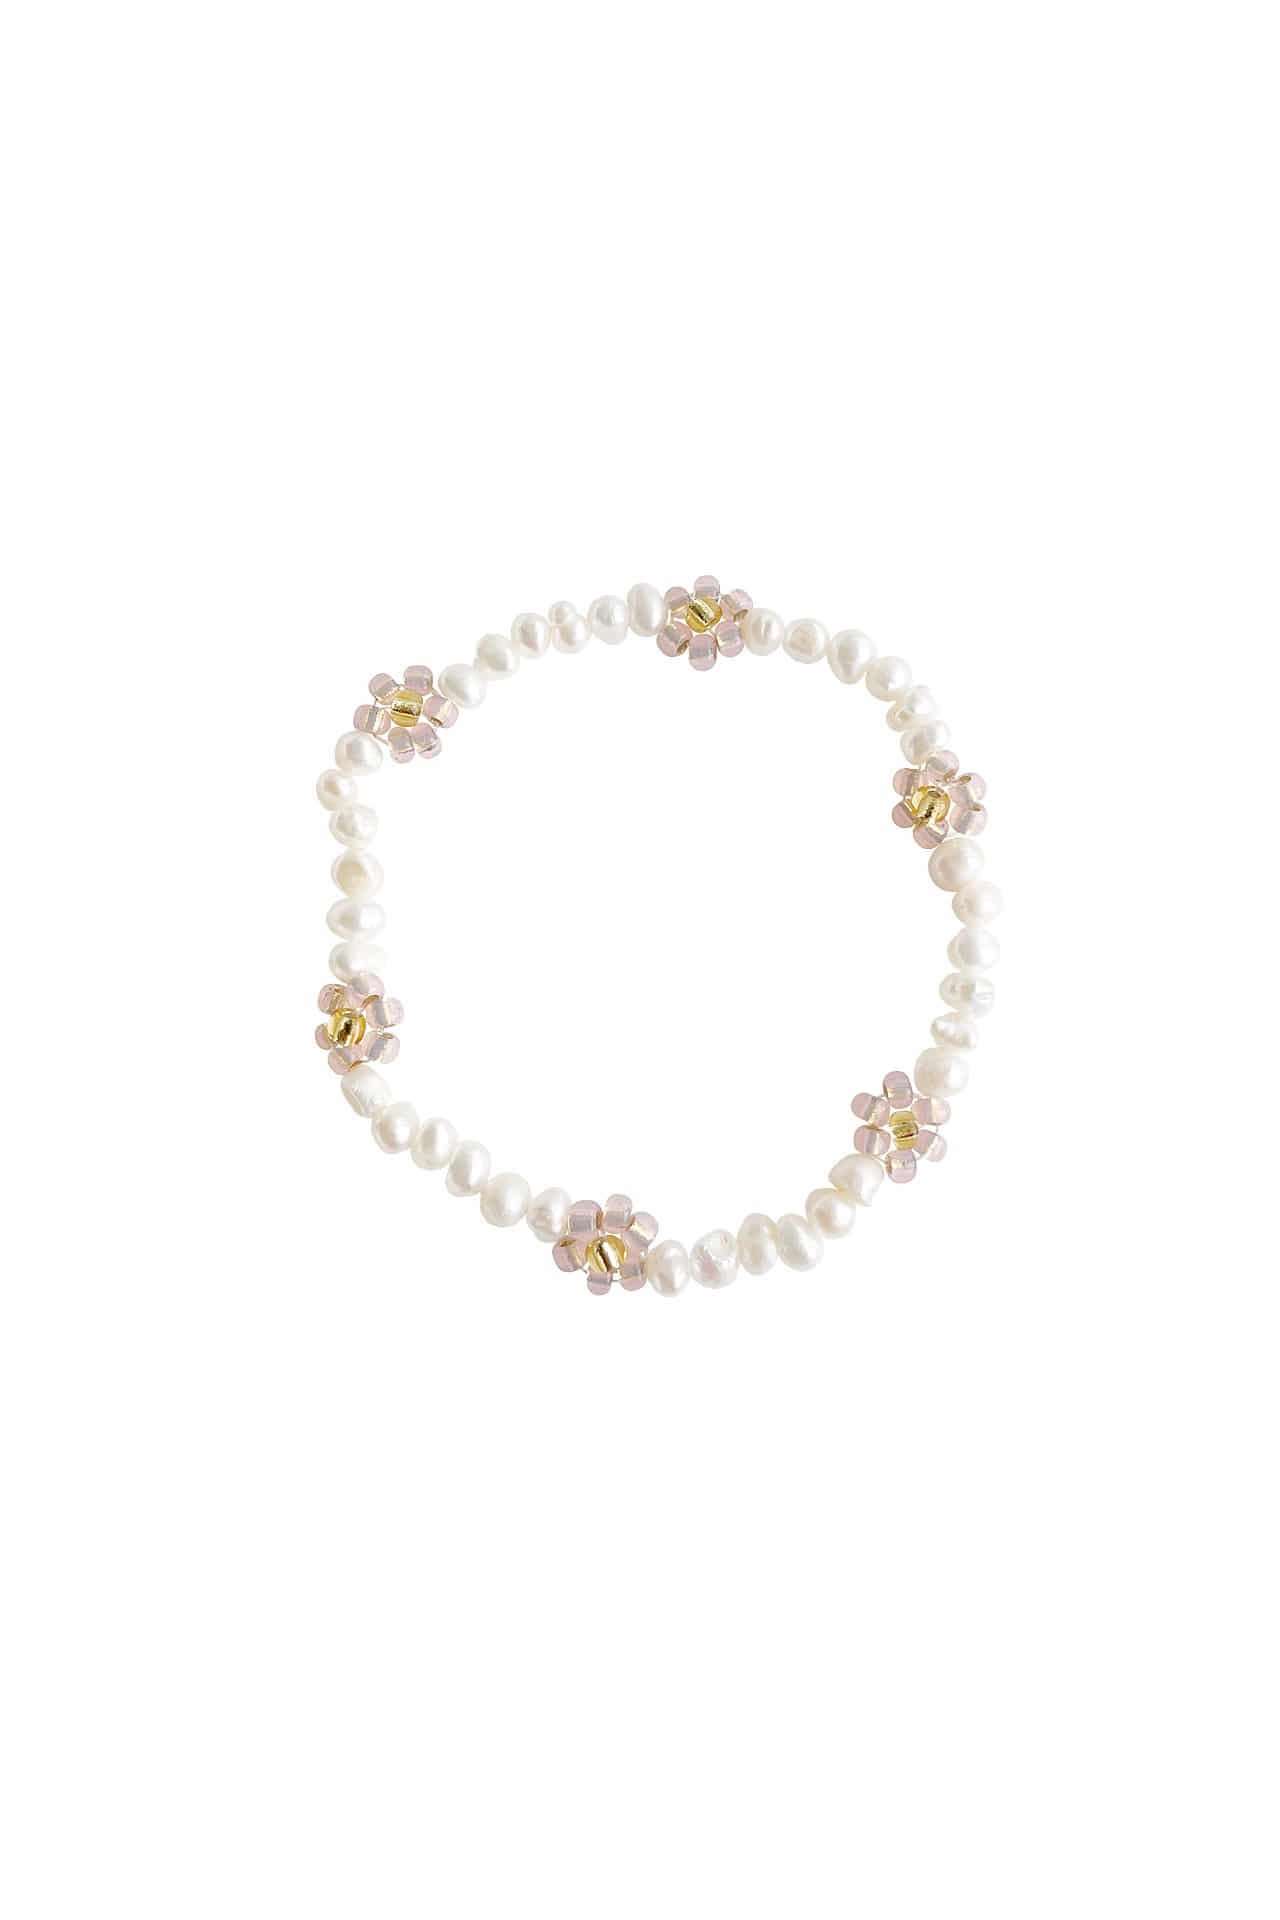 Butter Flower Bracelet | Peach